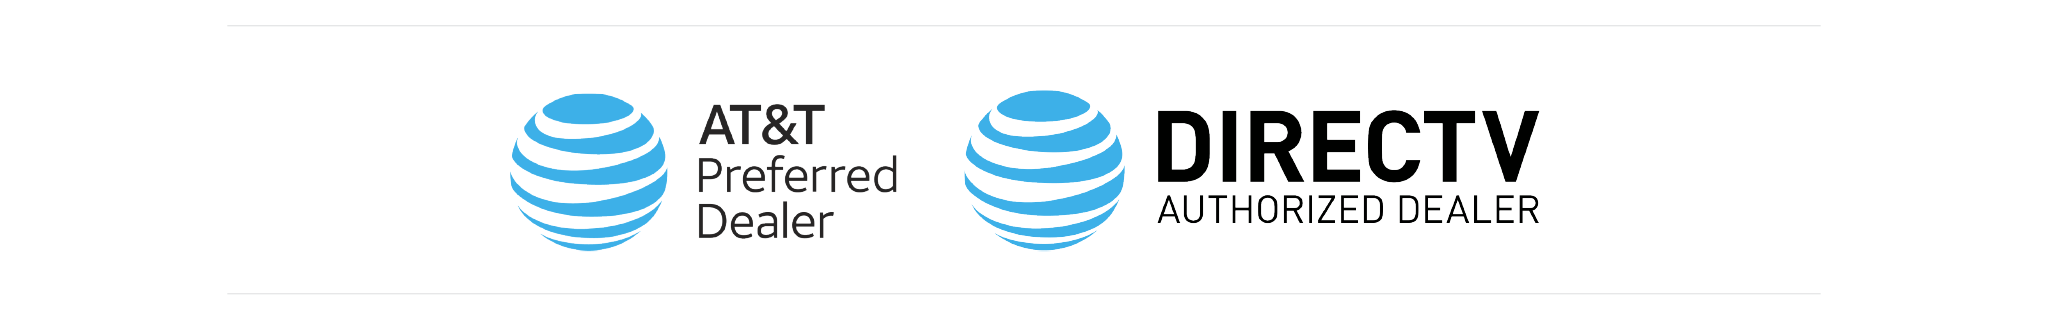 AT&T Preferred Dealer and DIRECTV Authorized Dealer